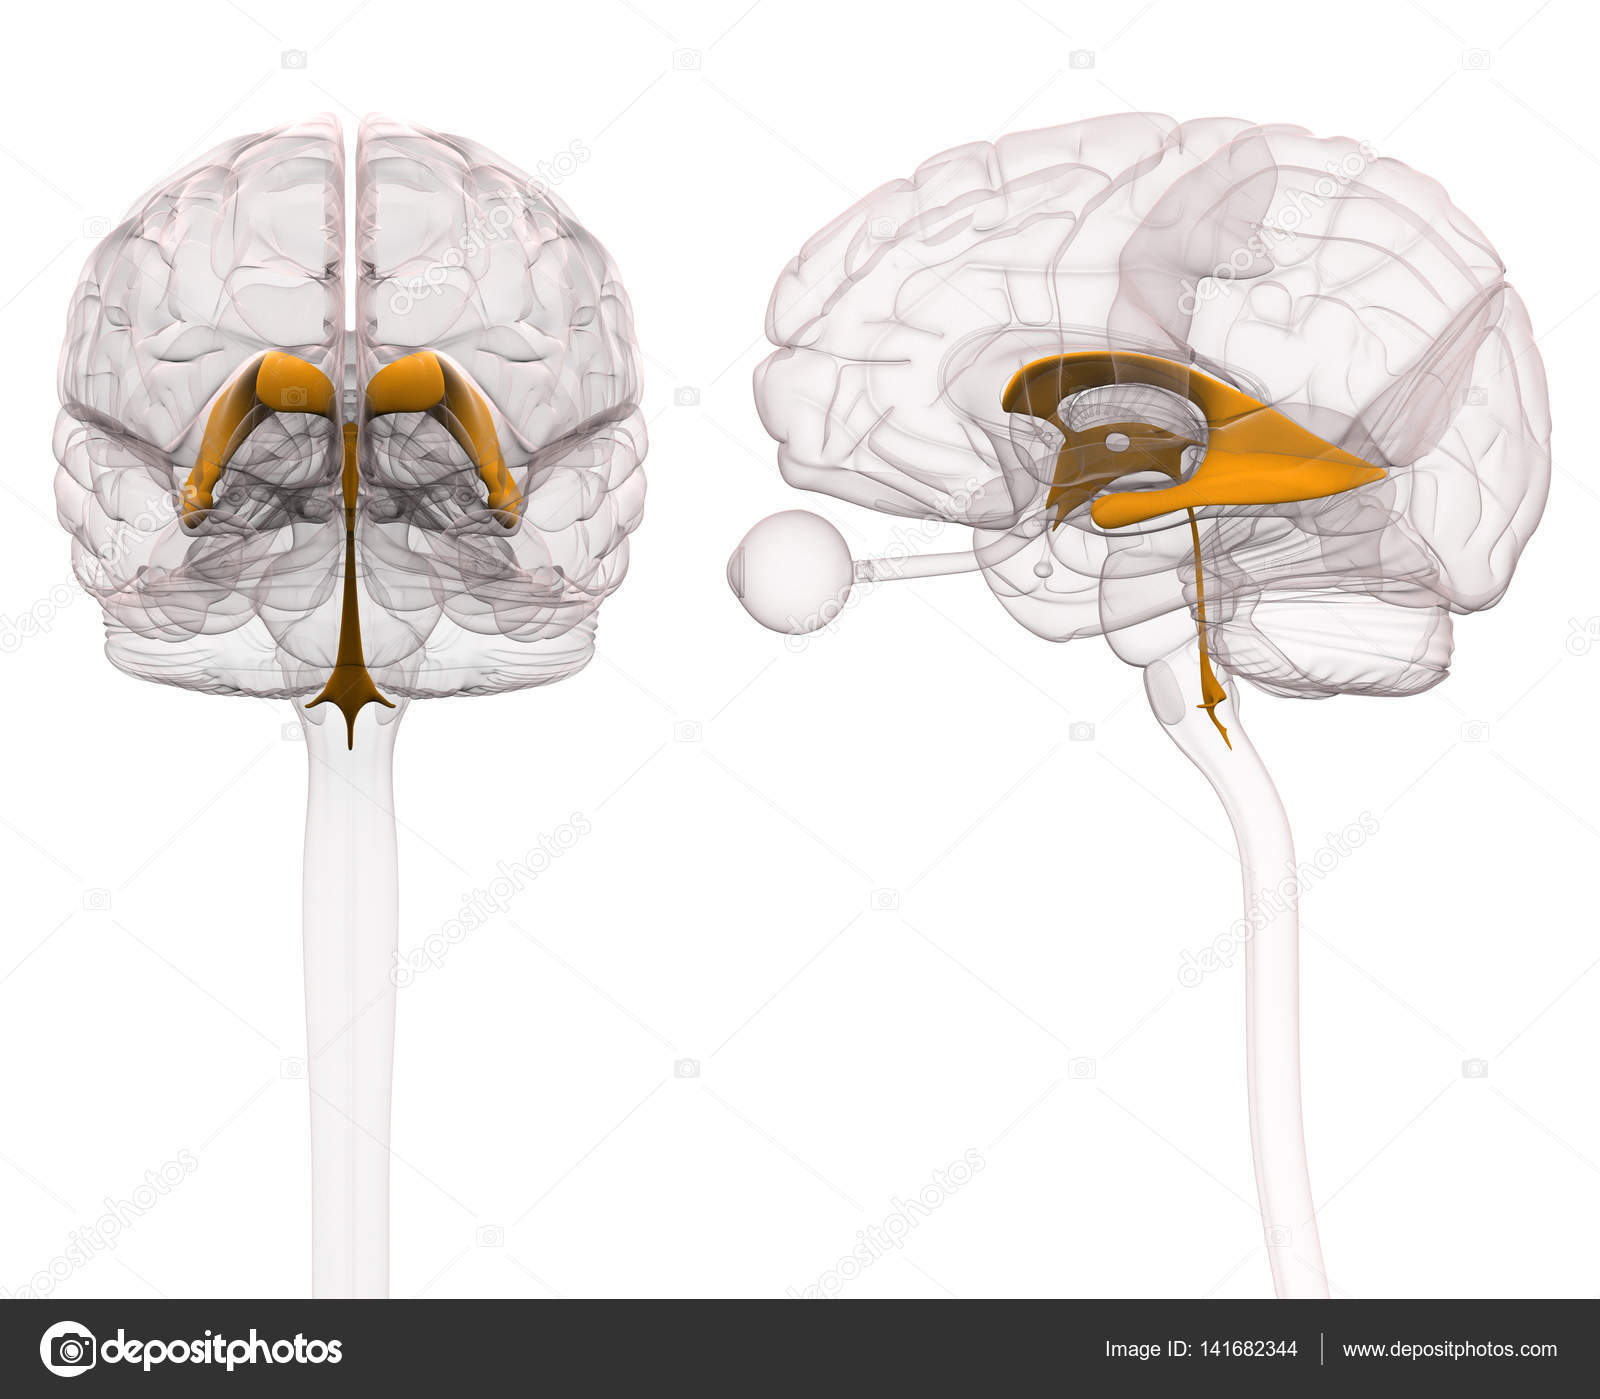 Ventricles of Brain Anatomy — Stock Photo © decade3d #141682344